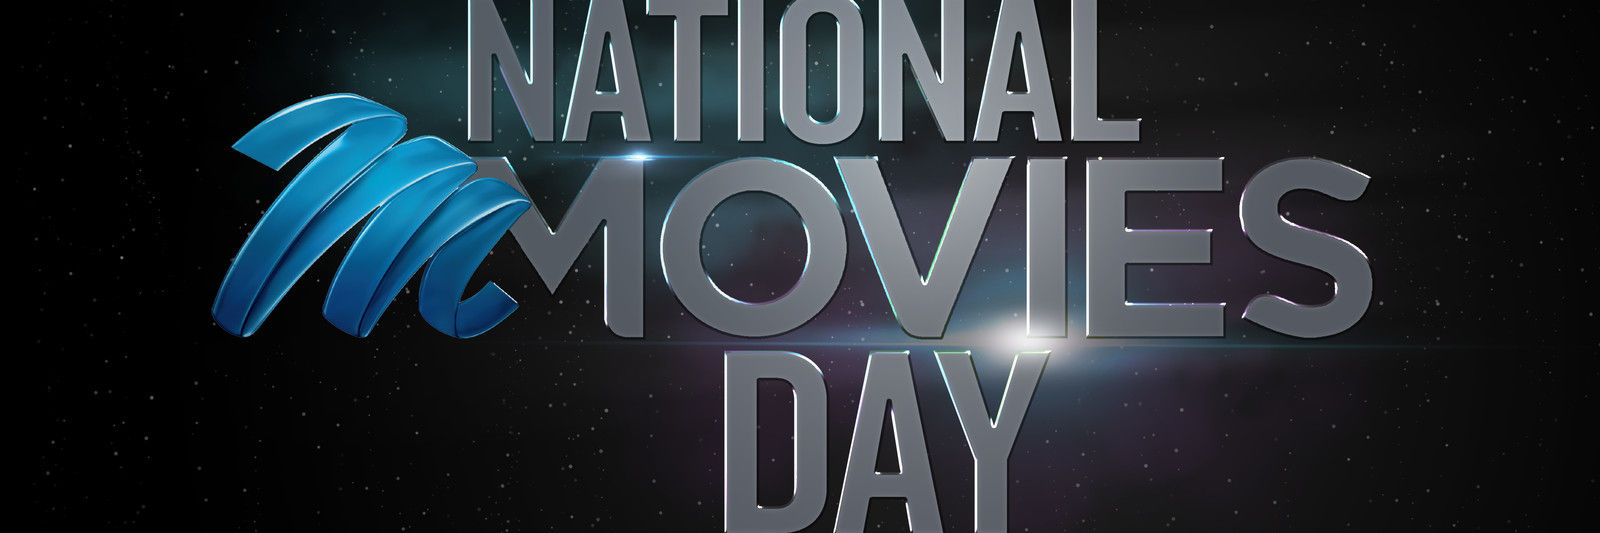 27 national movies day rgb 005 pre